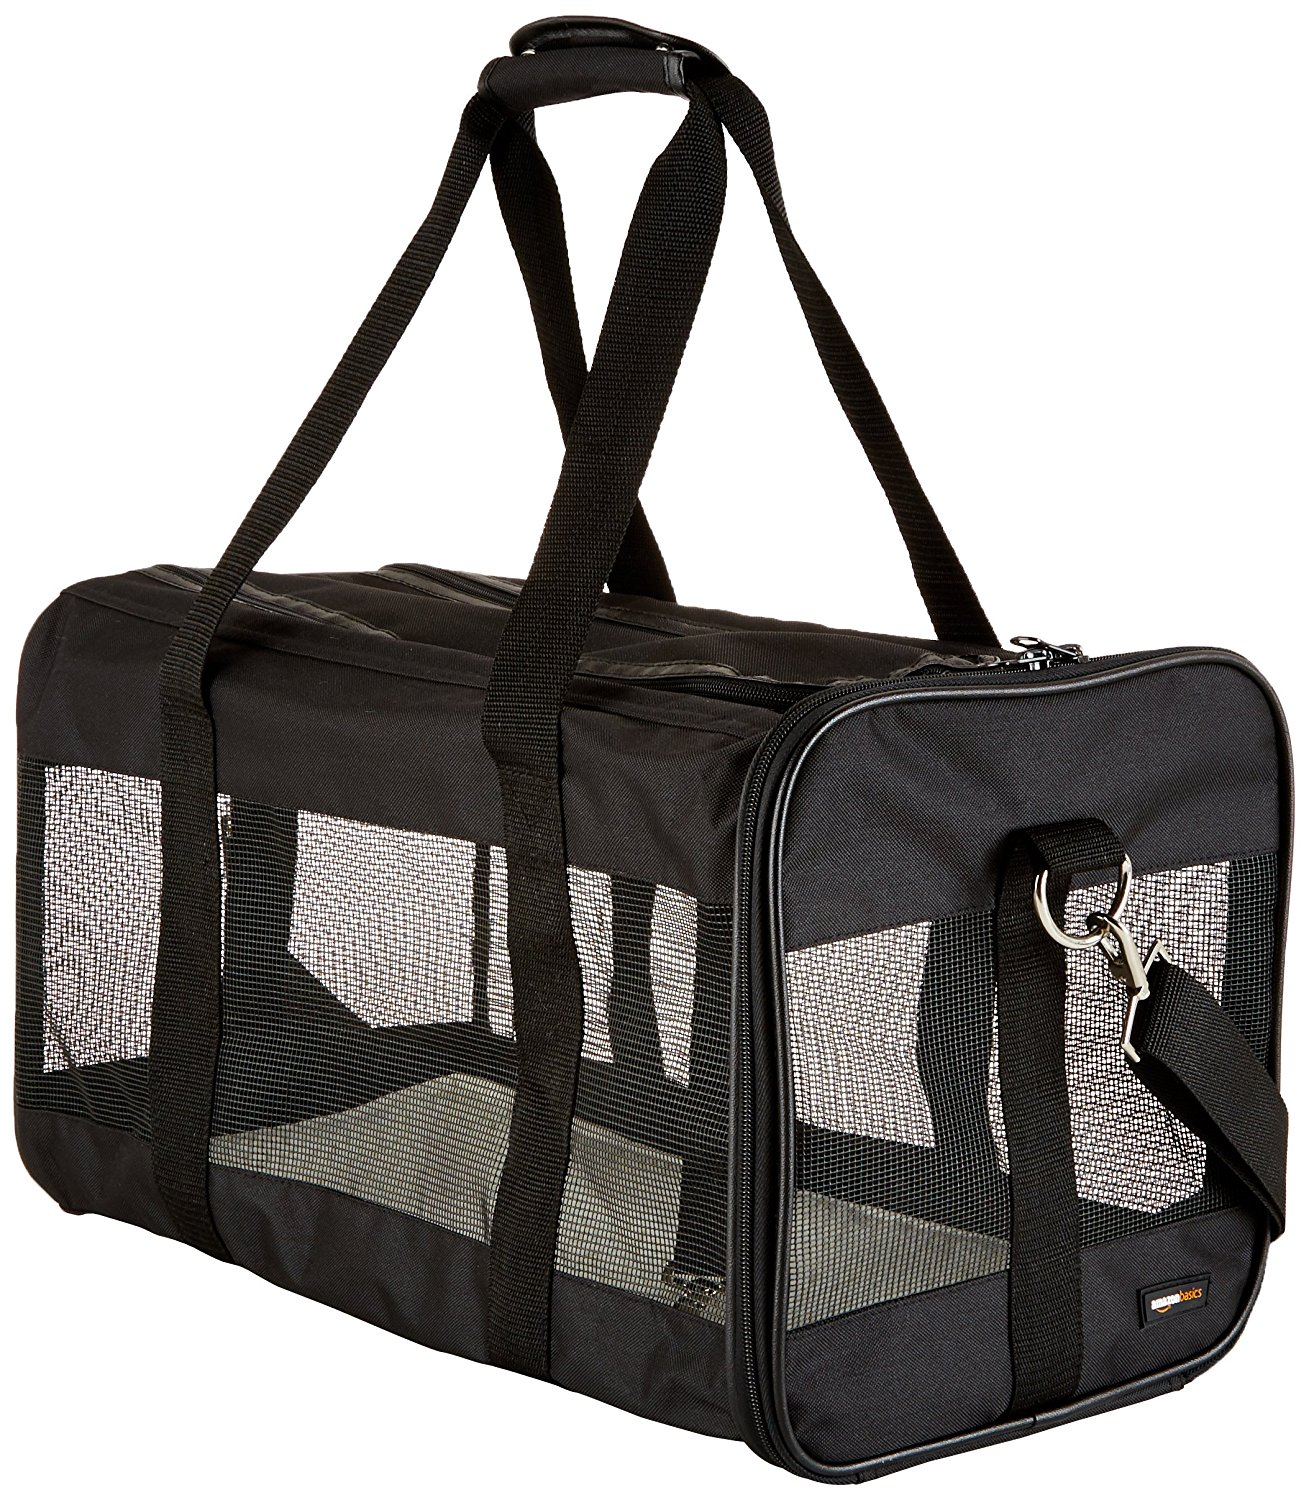 Best Cat Carrier for Two Cats